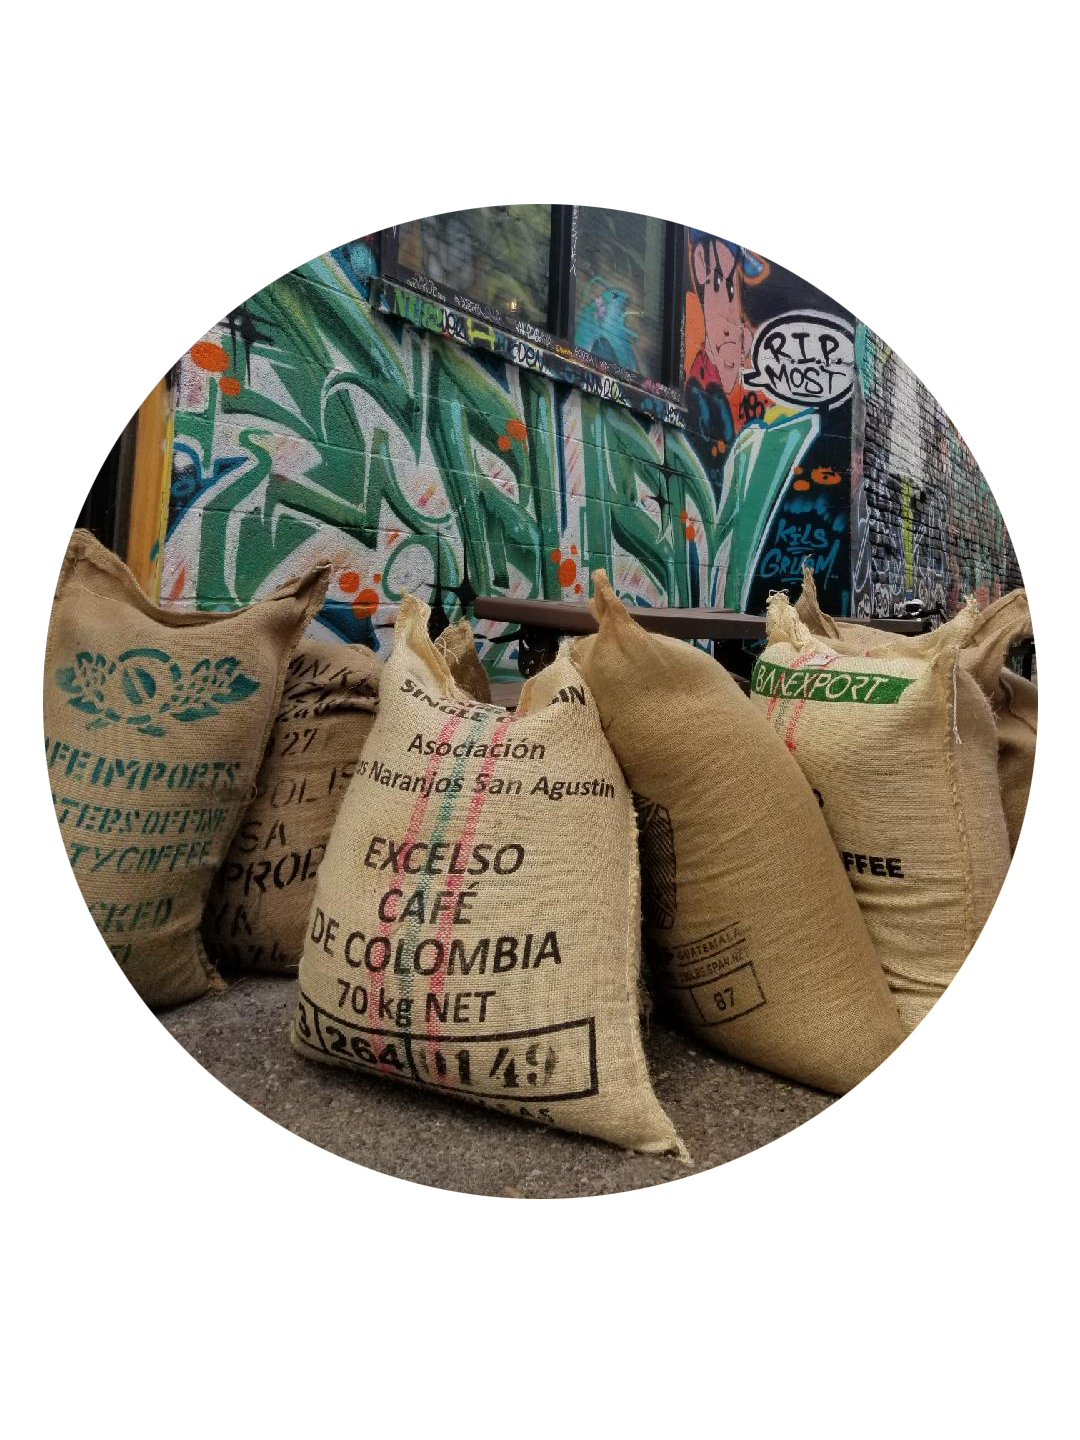 image of large burlap sacks of coffee in front of a graffiti covered wall